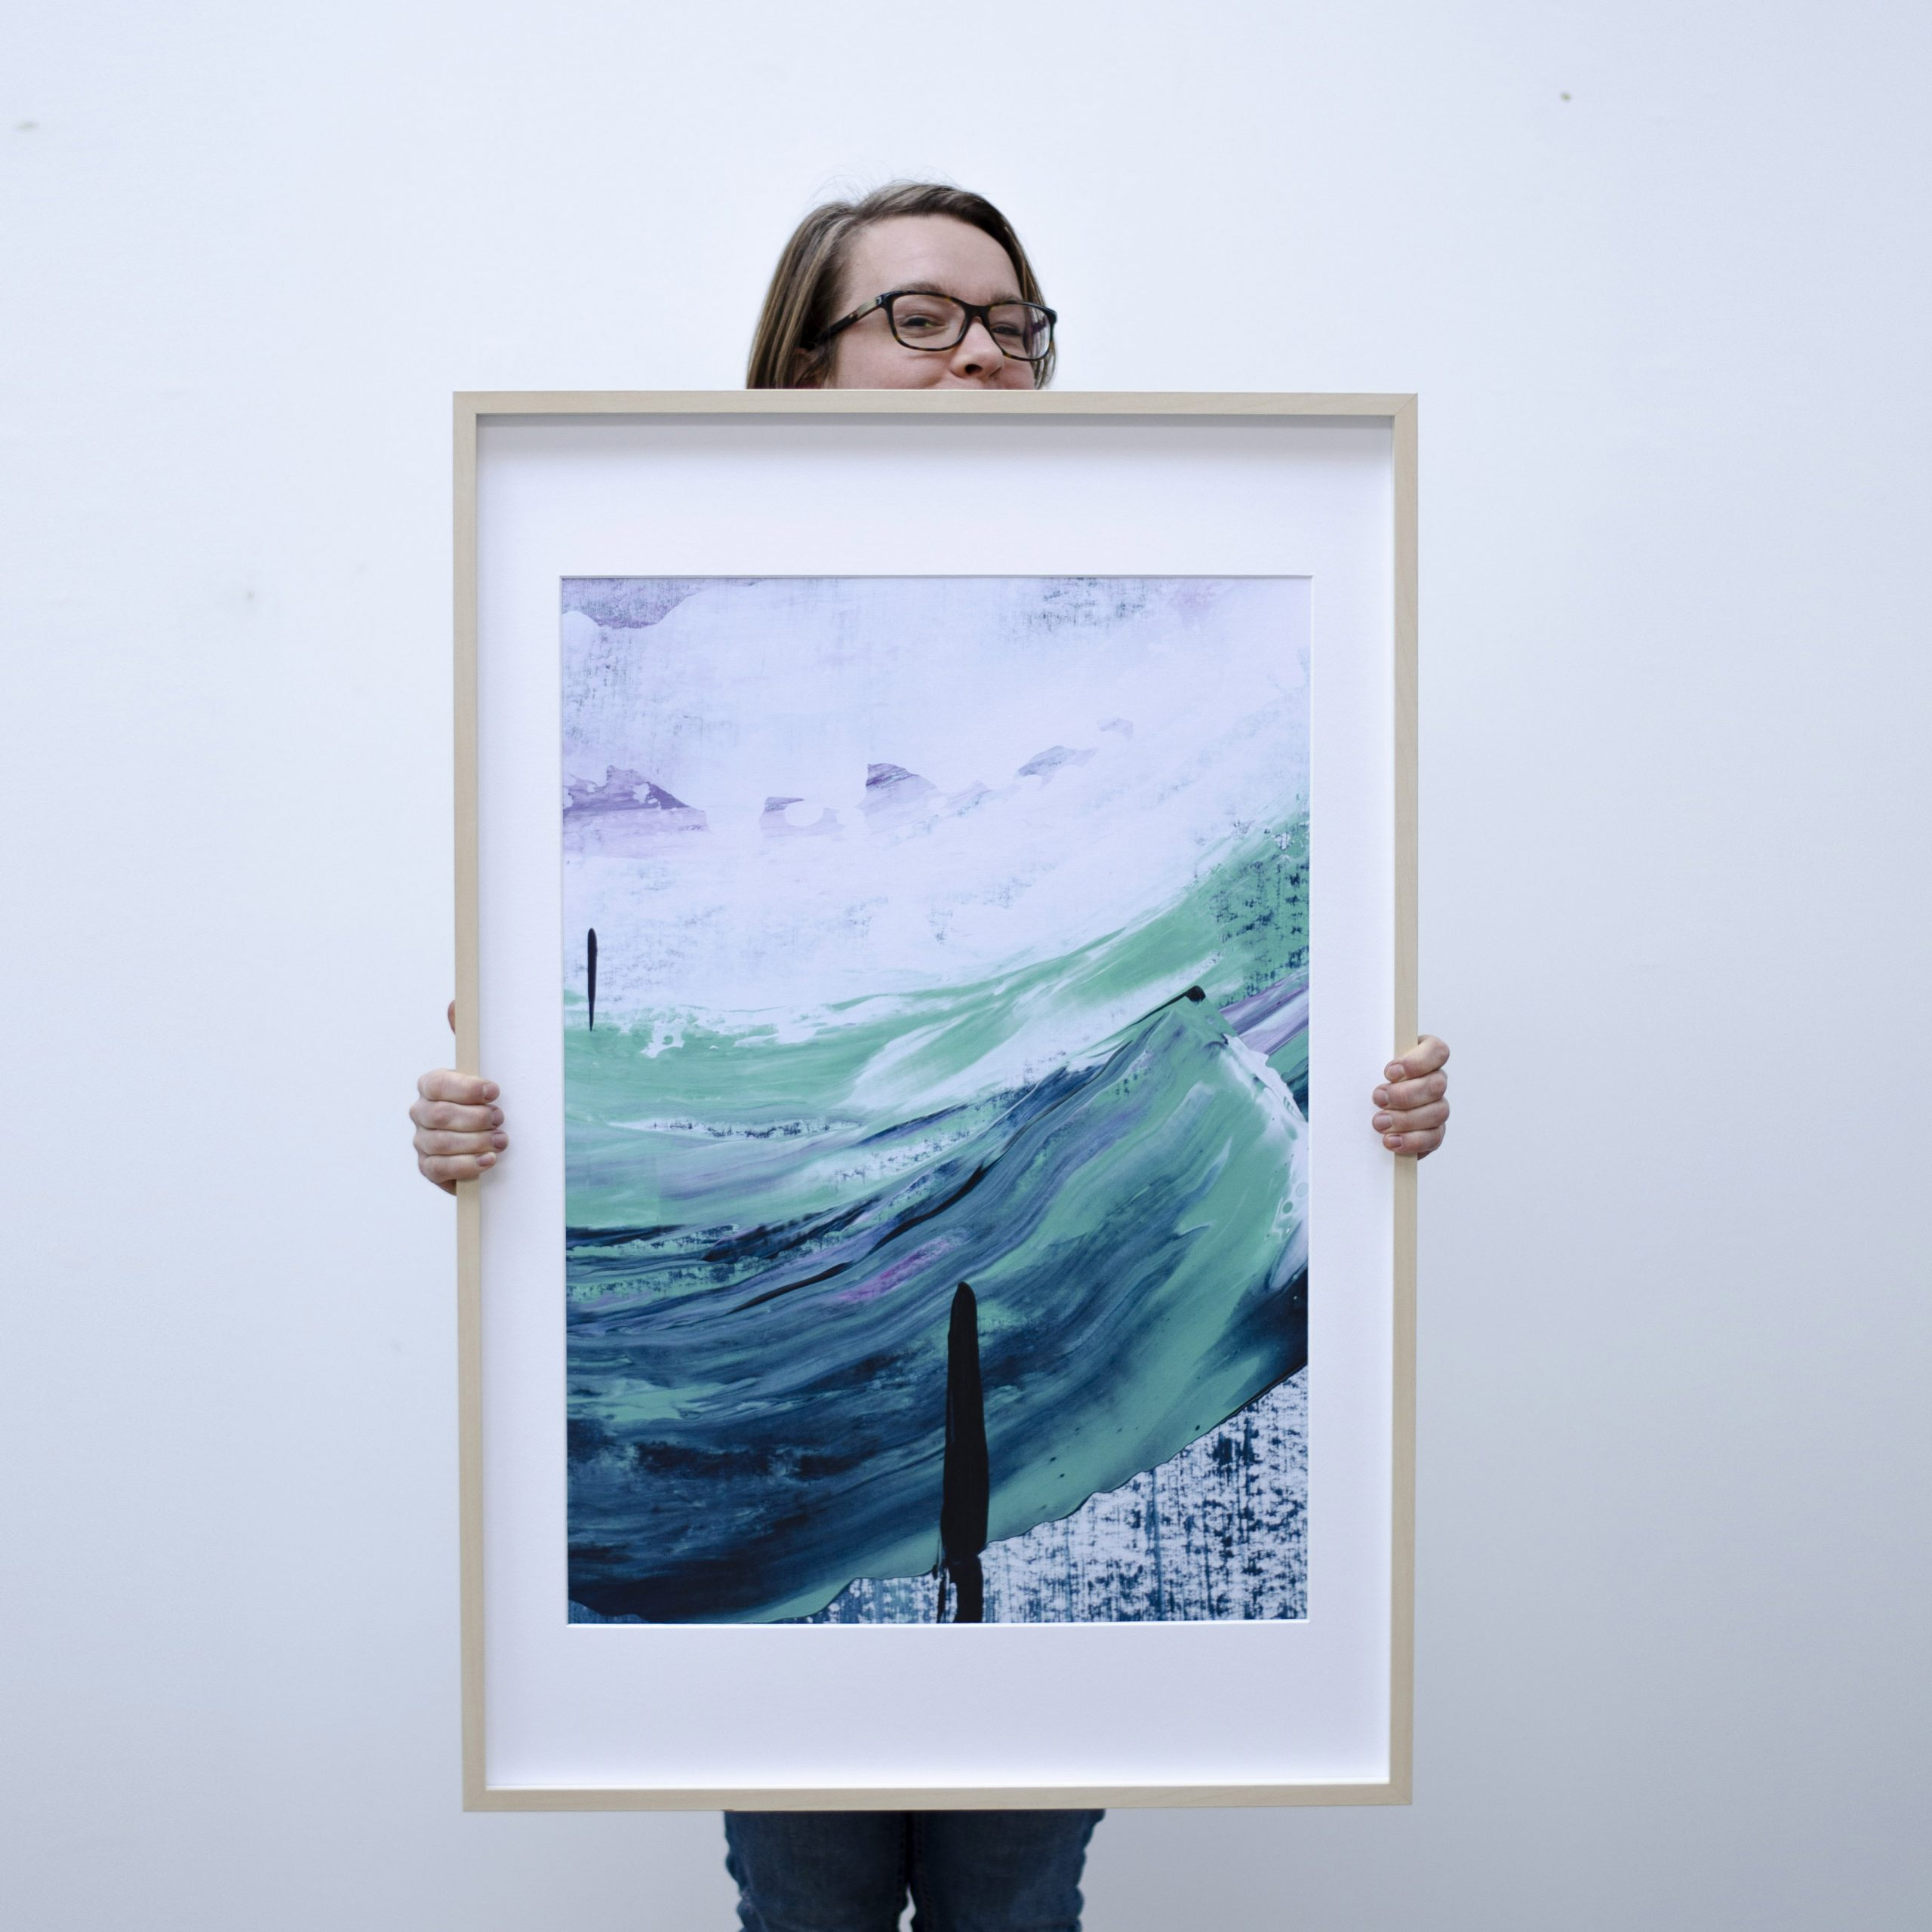 Kunstprint Atlas of the Ocean – Hold Steady